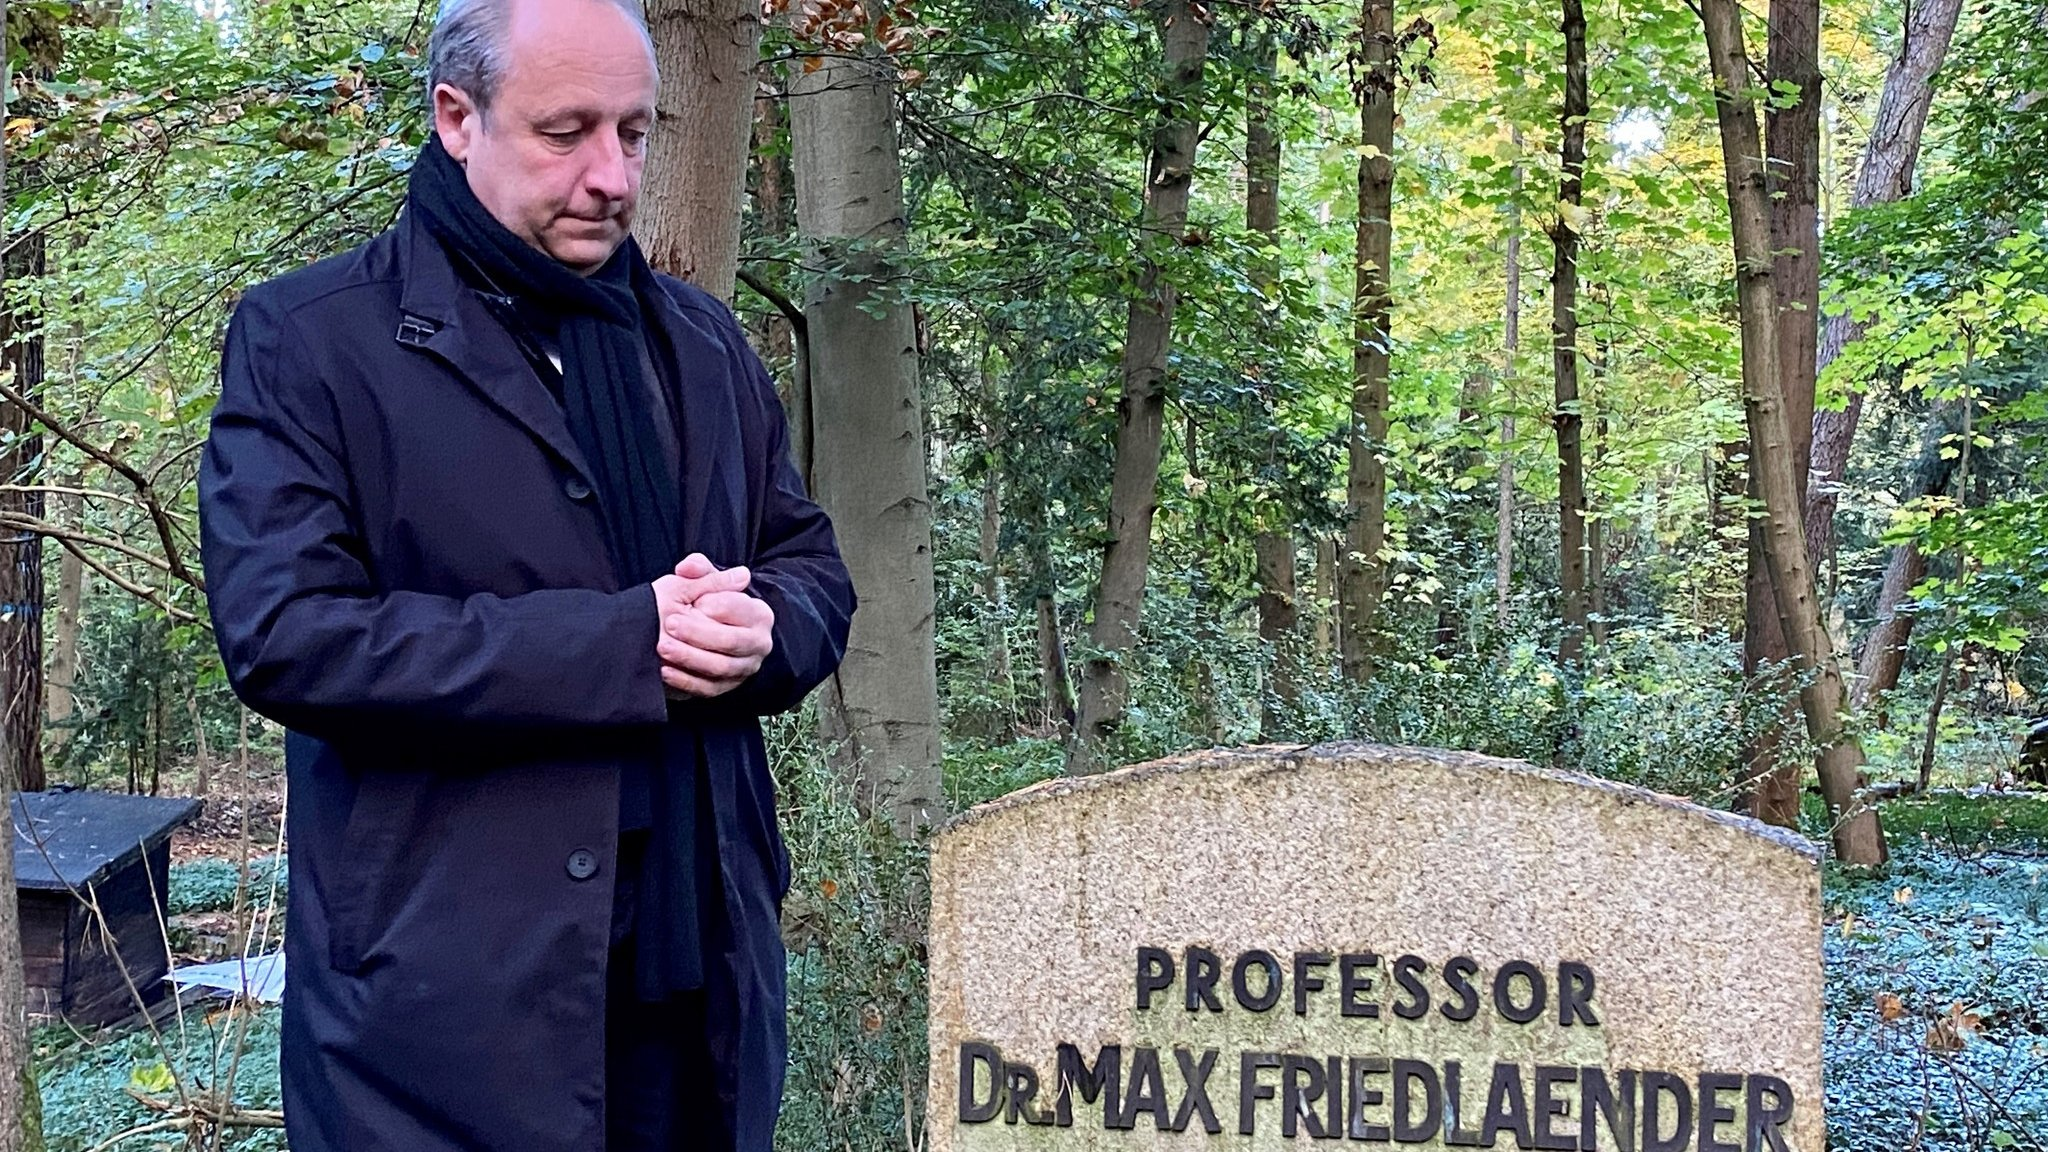 Bishop Christian Stäblein visiting the grave site at the cemetery in Stahnsdorf (12/10/21)